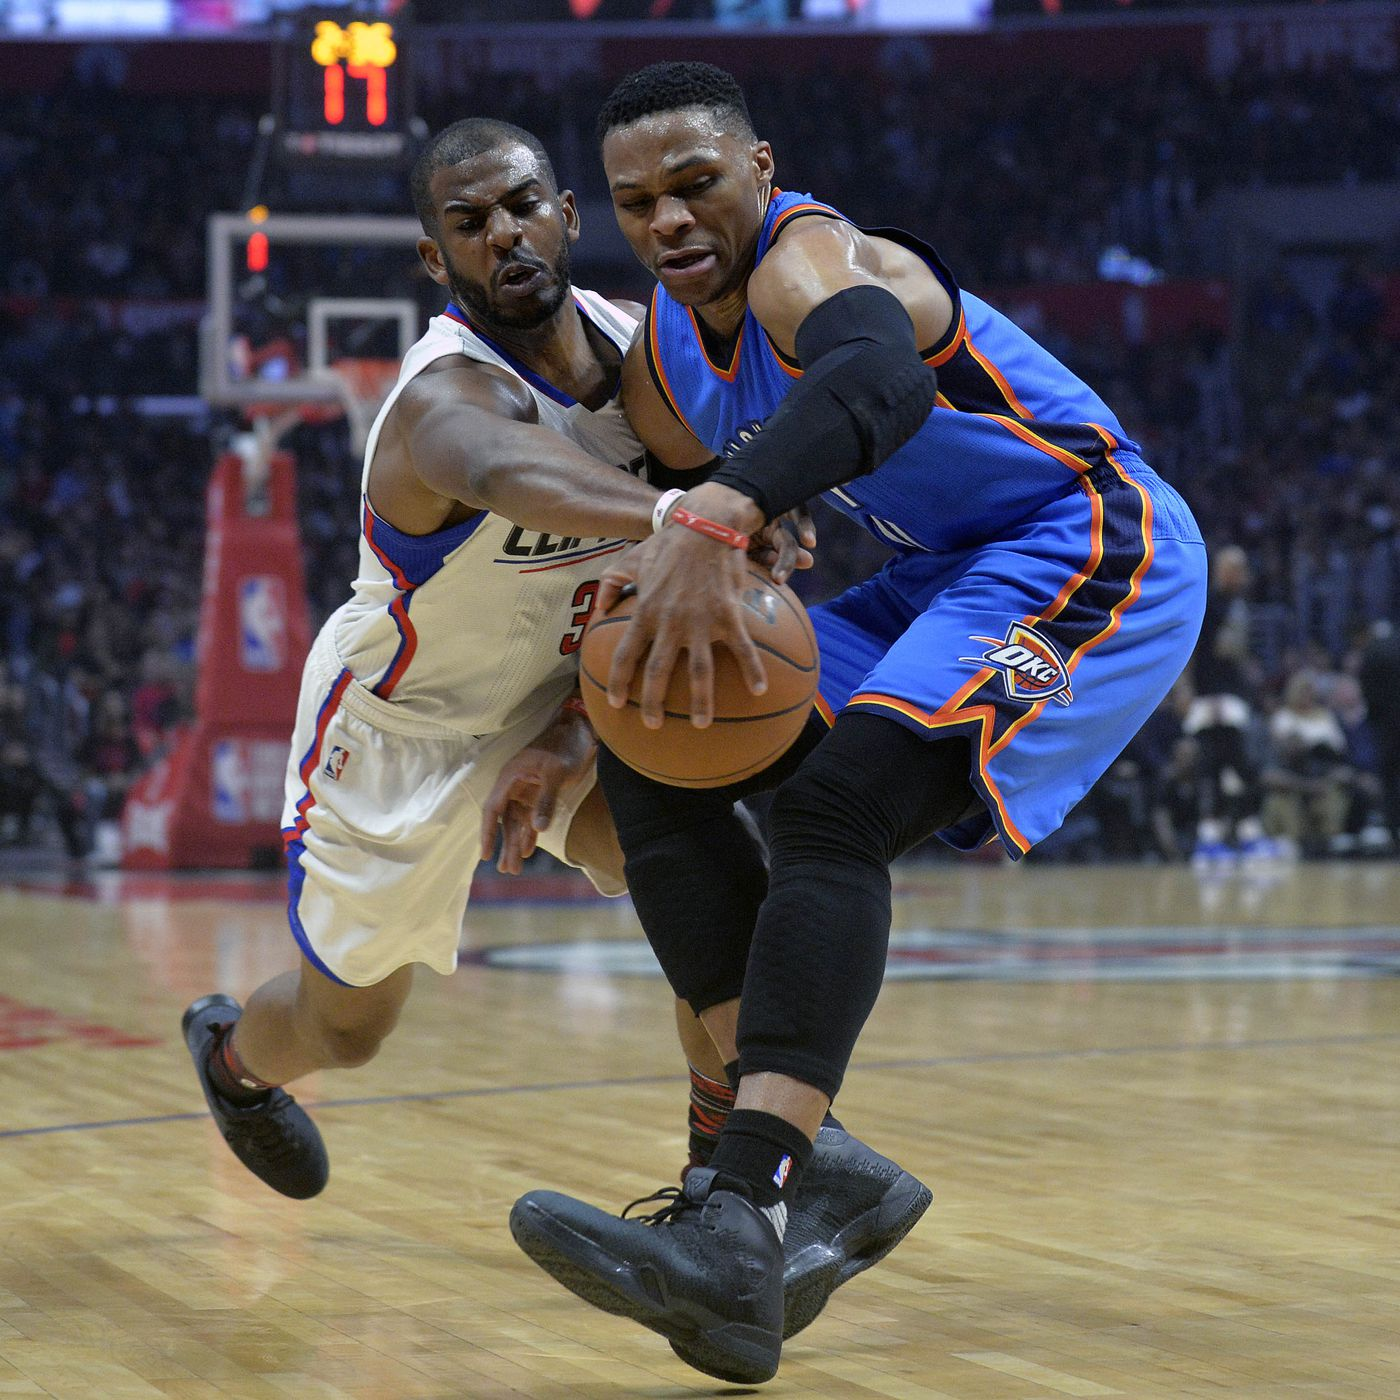 f39d2d455a45 Power ranking the 50 best point guards in the NBA - Denver Stiffs